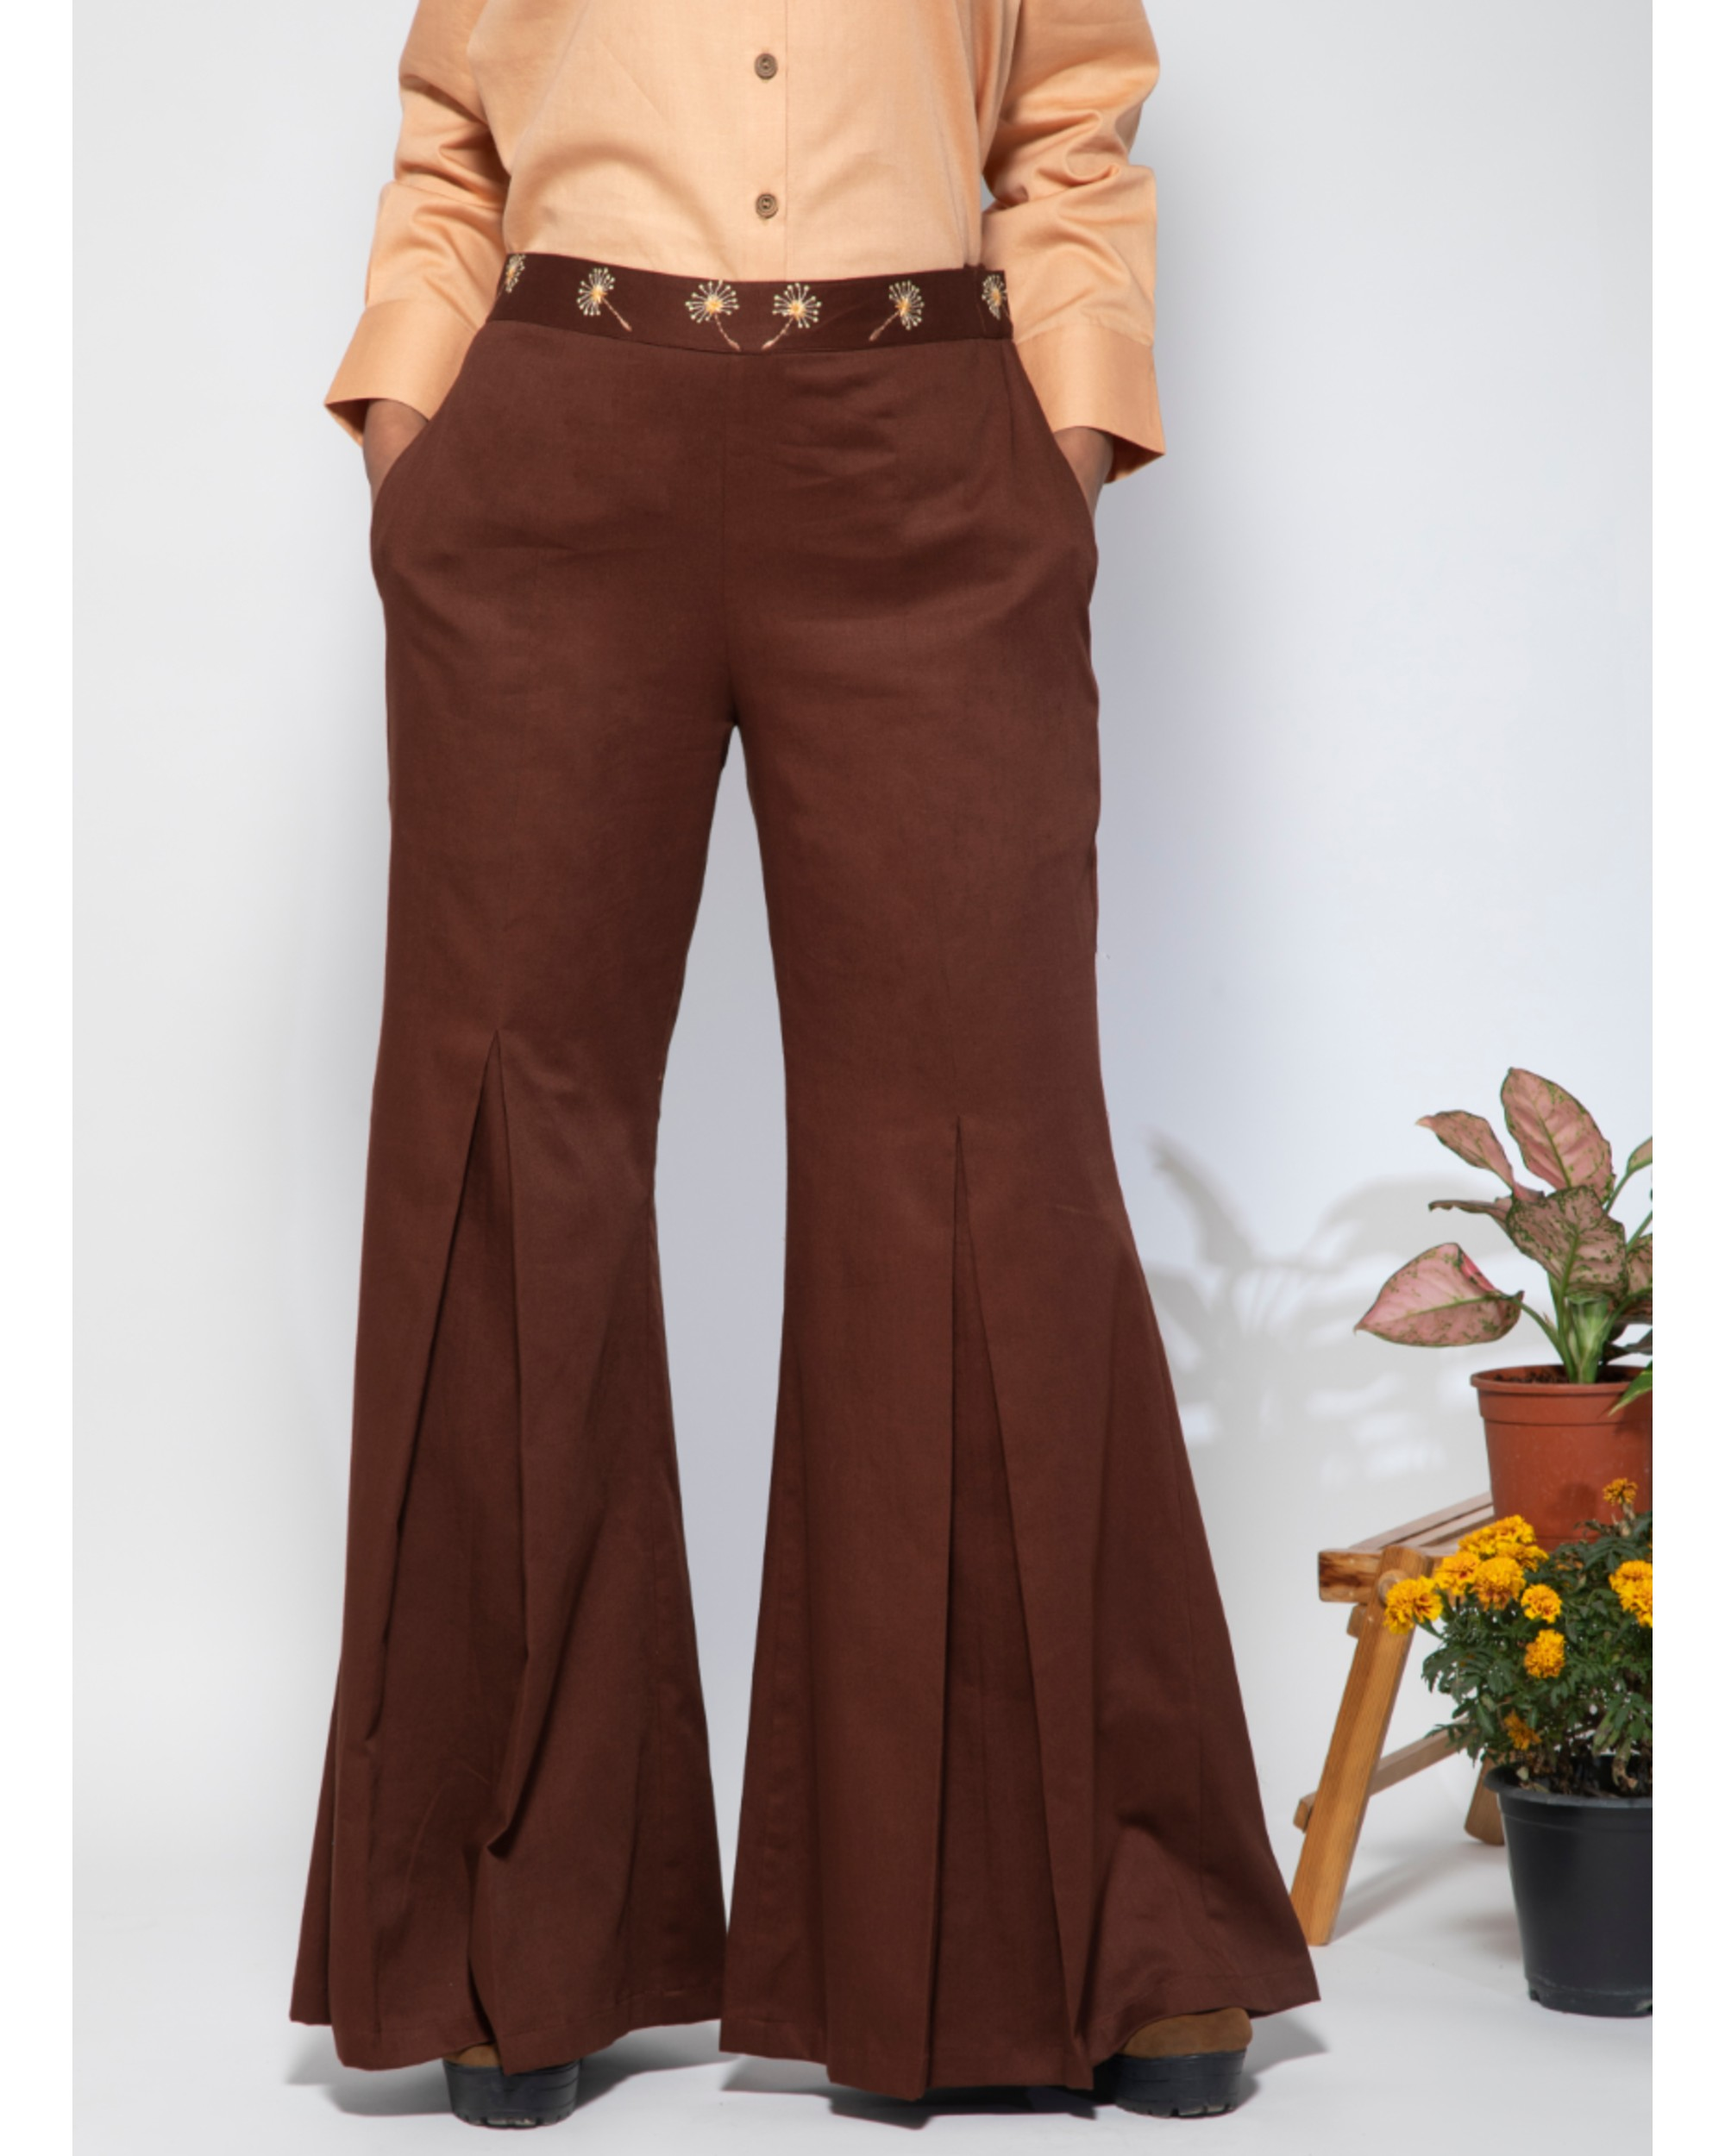 Dark brown embroidered flare pants